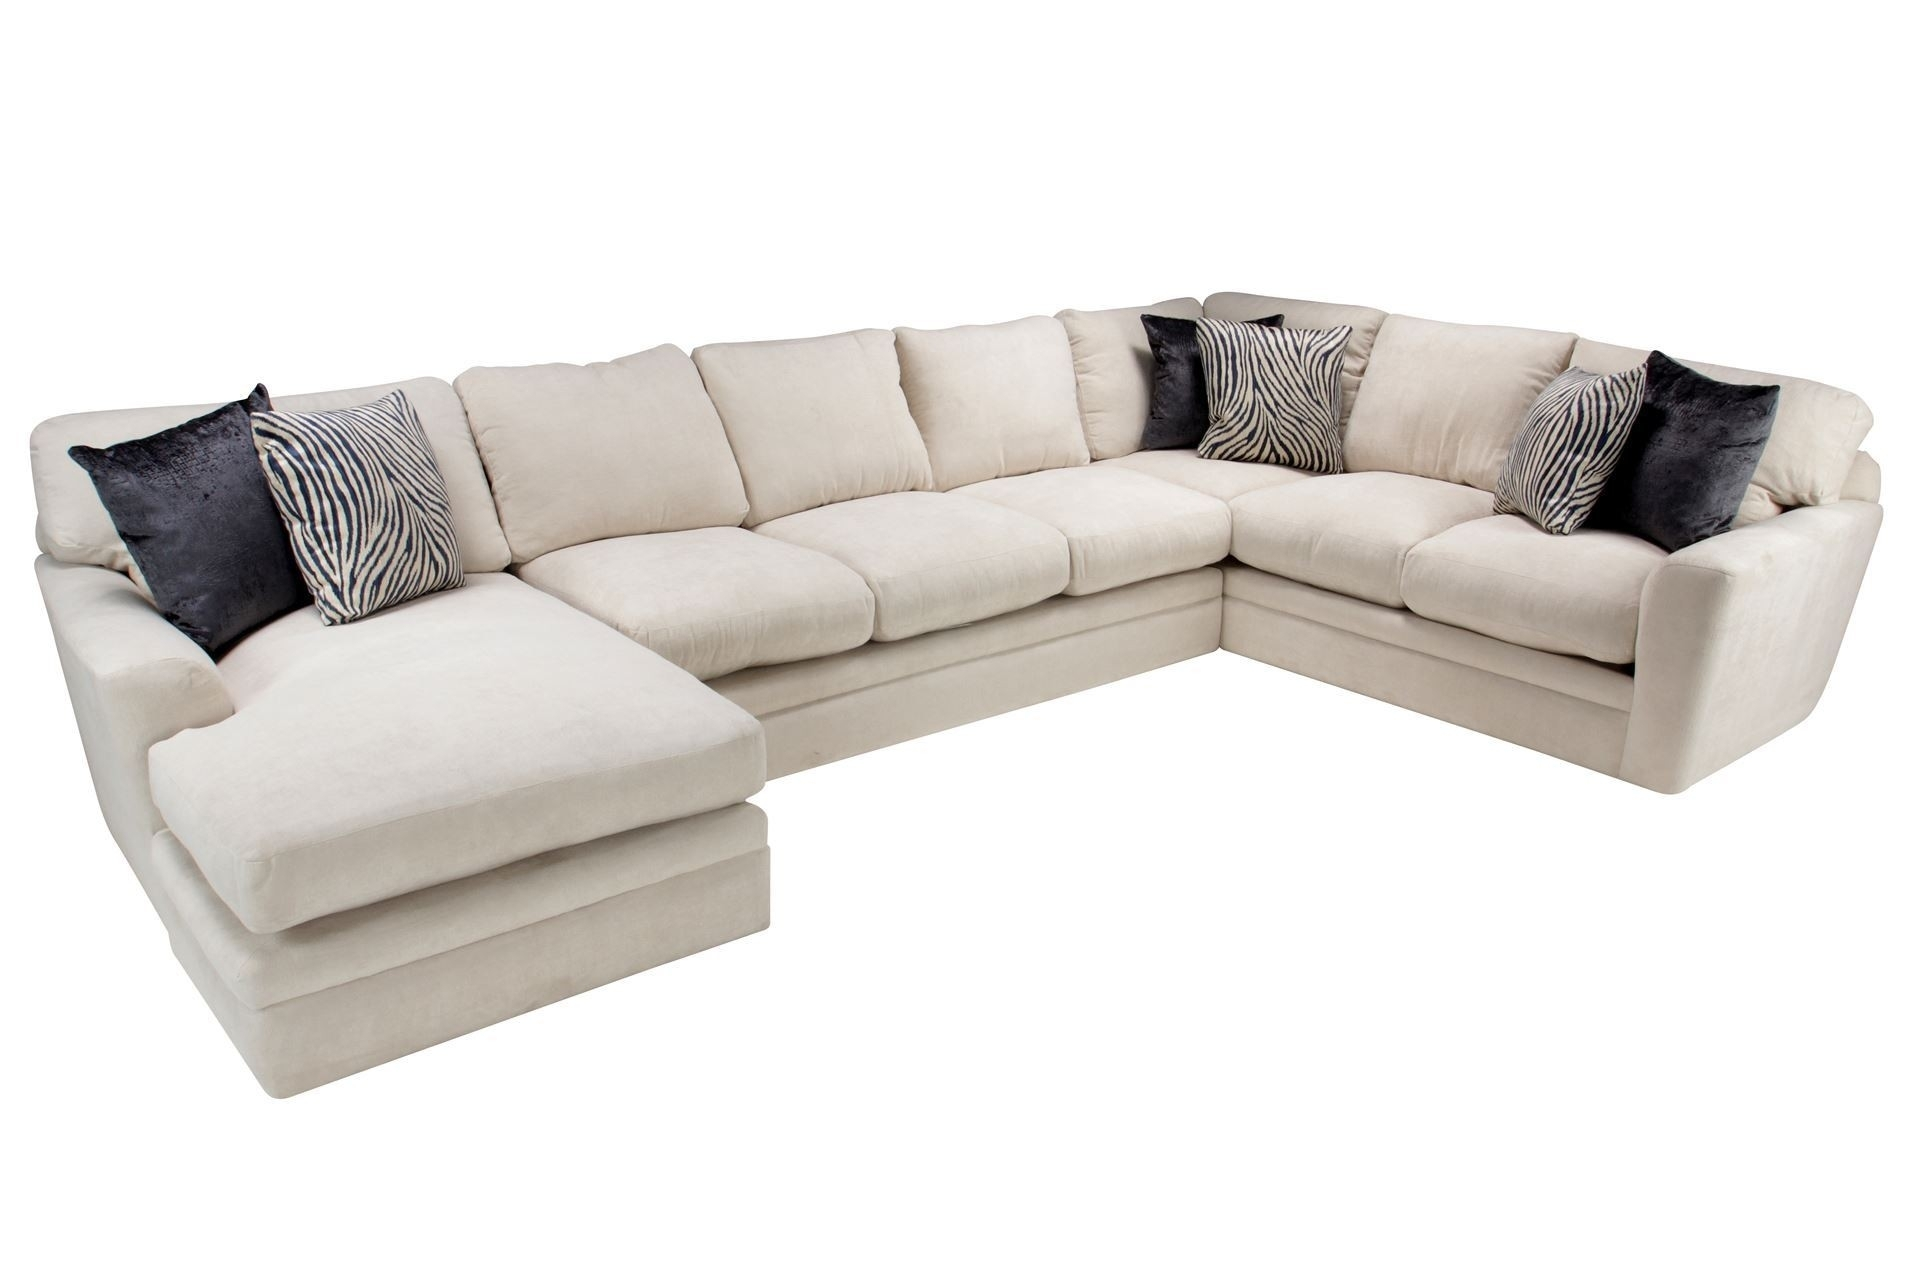 Living Spaces Sectional Sofas Kerri 2 Piece W Raf Chaise 107153 0 for Kerri 2 Piece Sectionals With Laf Chaise (Image 21 of 30)